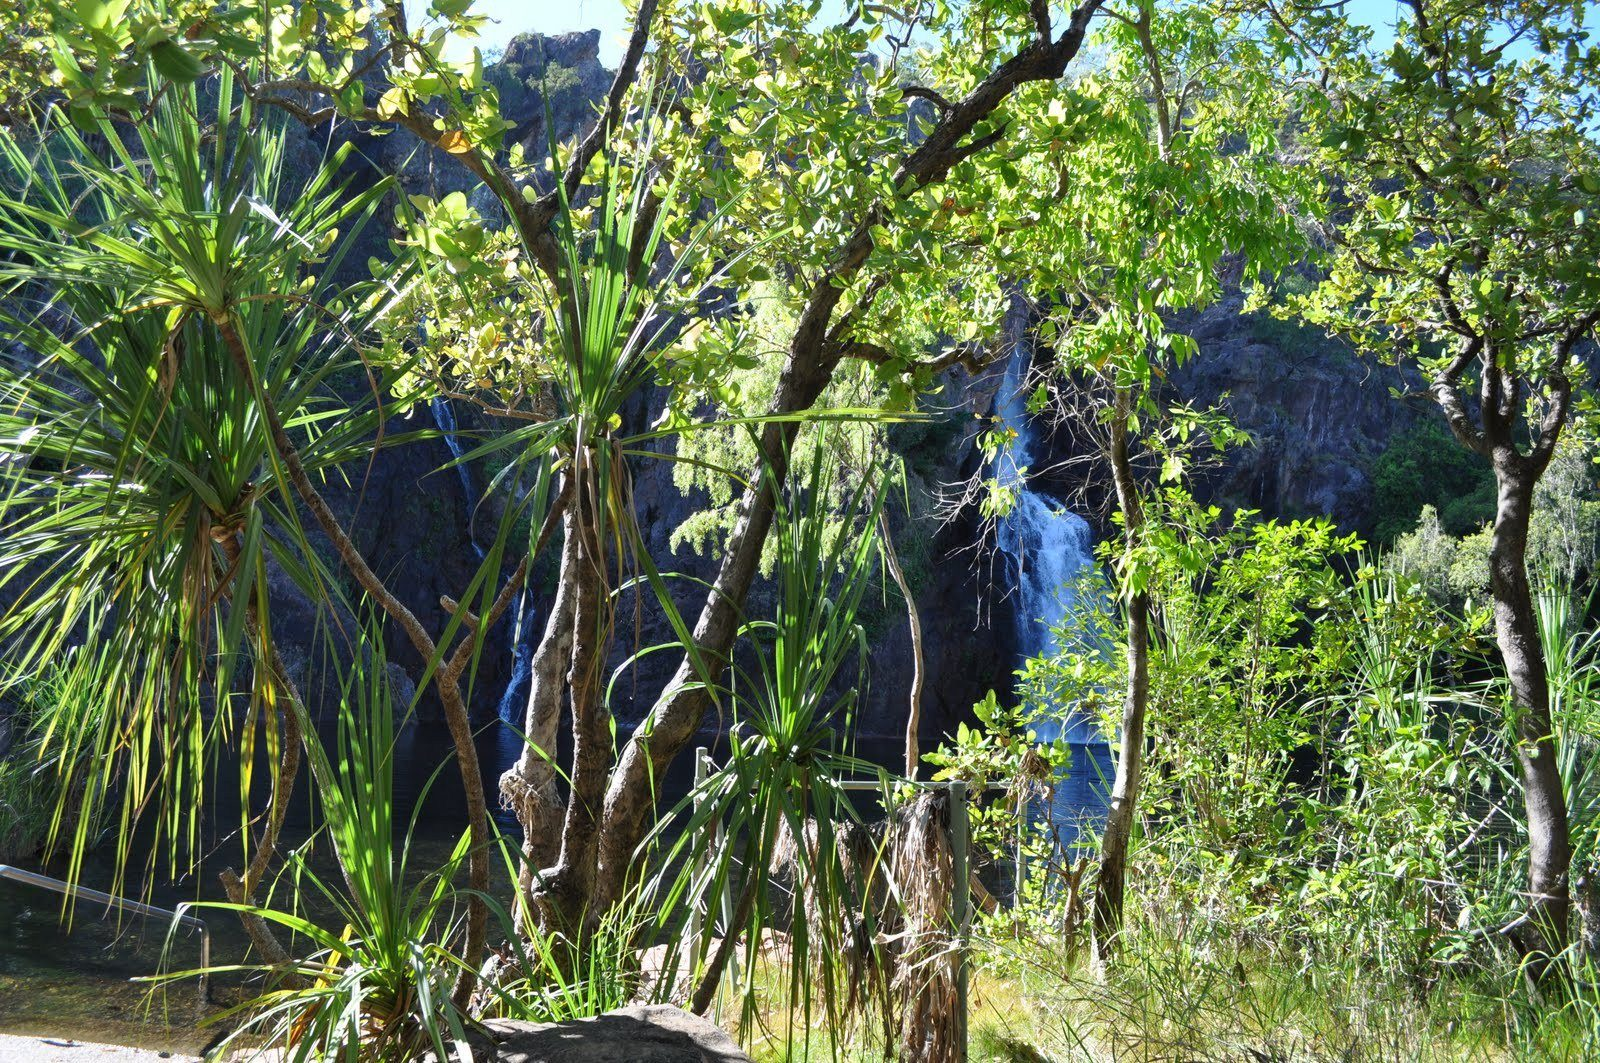 Manngarre Rainforest Walk, Kakadu Area, Northern Territory, Australia